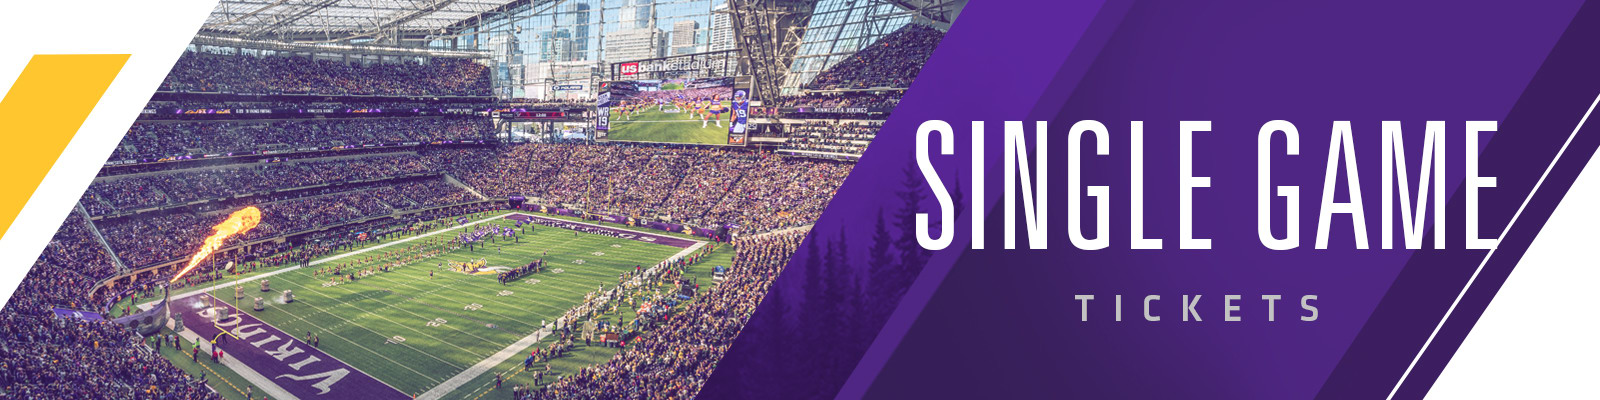 Vikings Single Game Tickets | Minnesota Vikings - vikings com